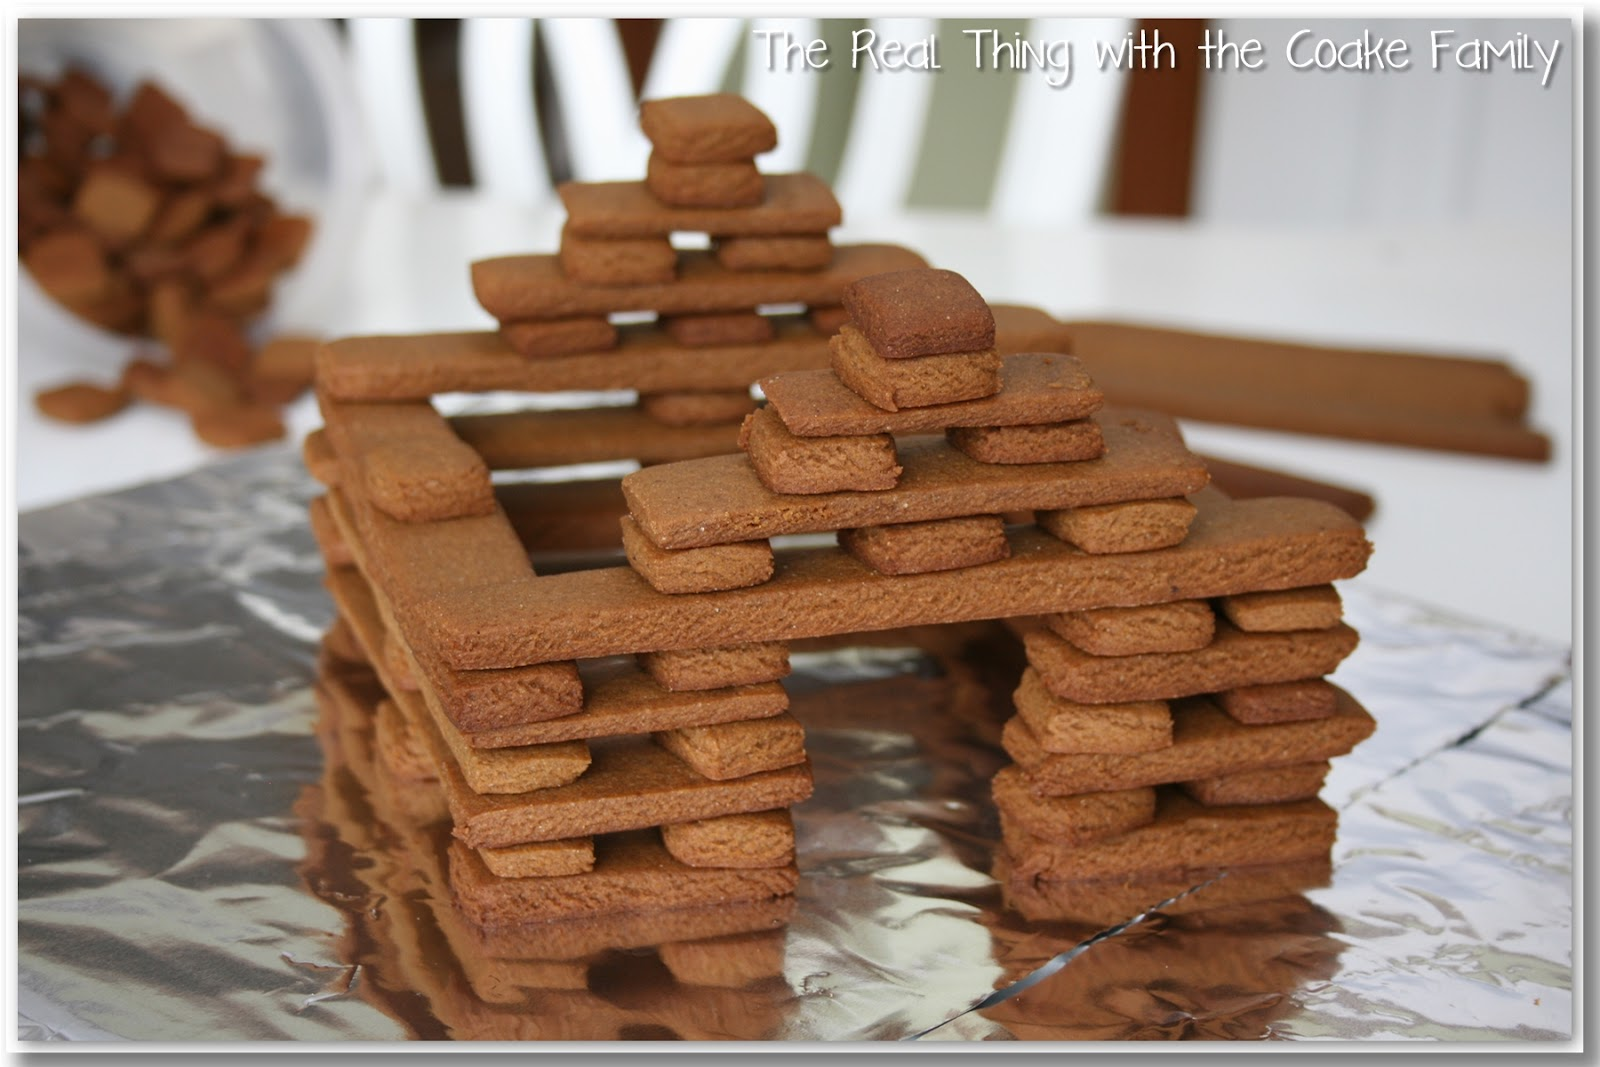 Christmas activities gingerbread house recipe the real thing with place your final 2 log on top of the 2 spacers use 2 spacers stacked on top of each other for the final pieces to support your roof maxwellsz